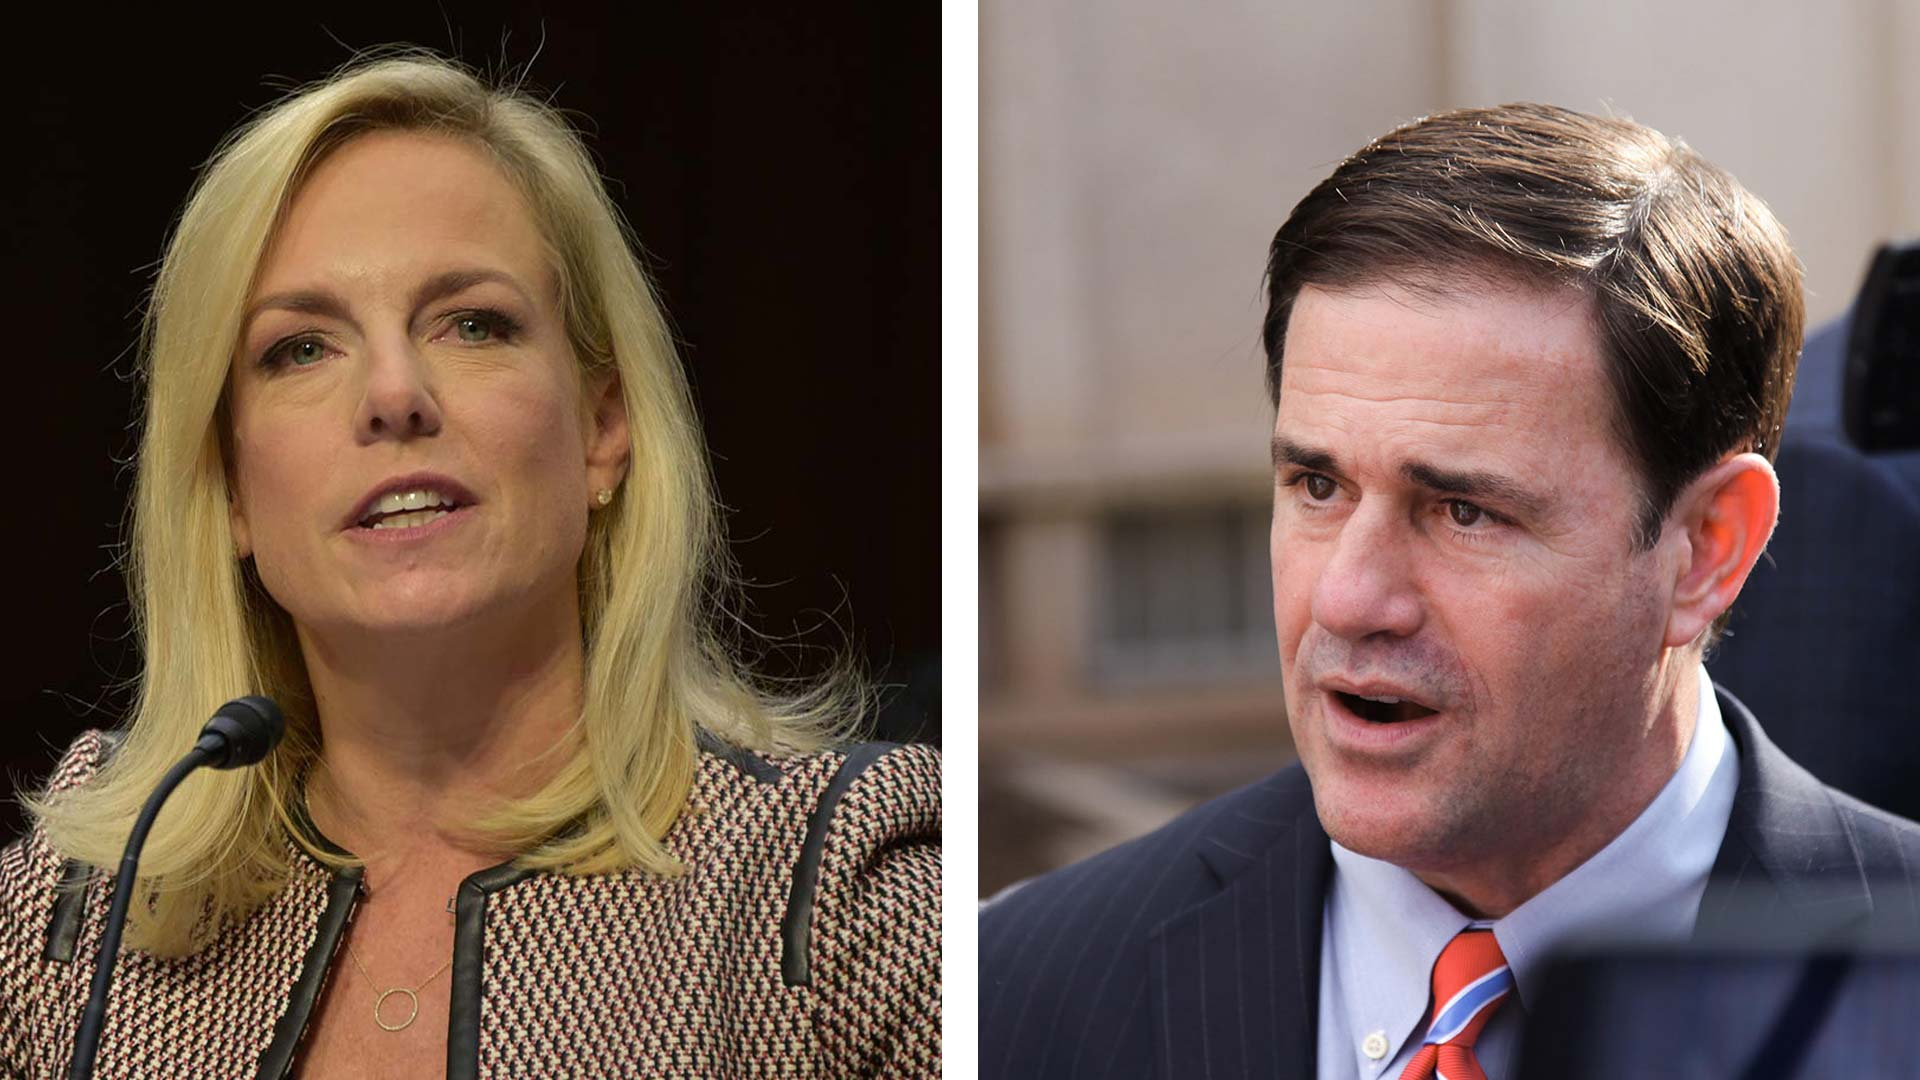 Homeland Security Secretary Kirstjen Nielsen, left, in a file photo from the Department of Homeland Security. Arizona Gov. Doug Ducey, right, in a file photo from AZPM.